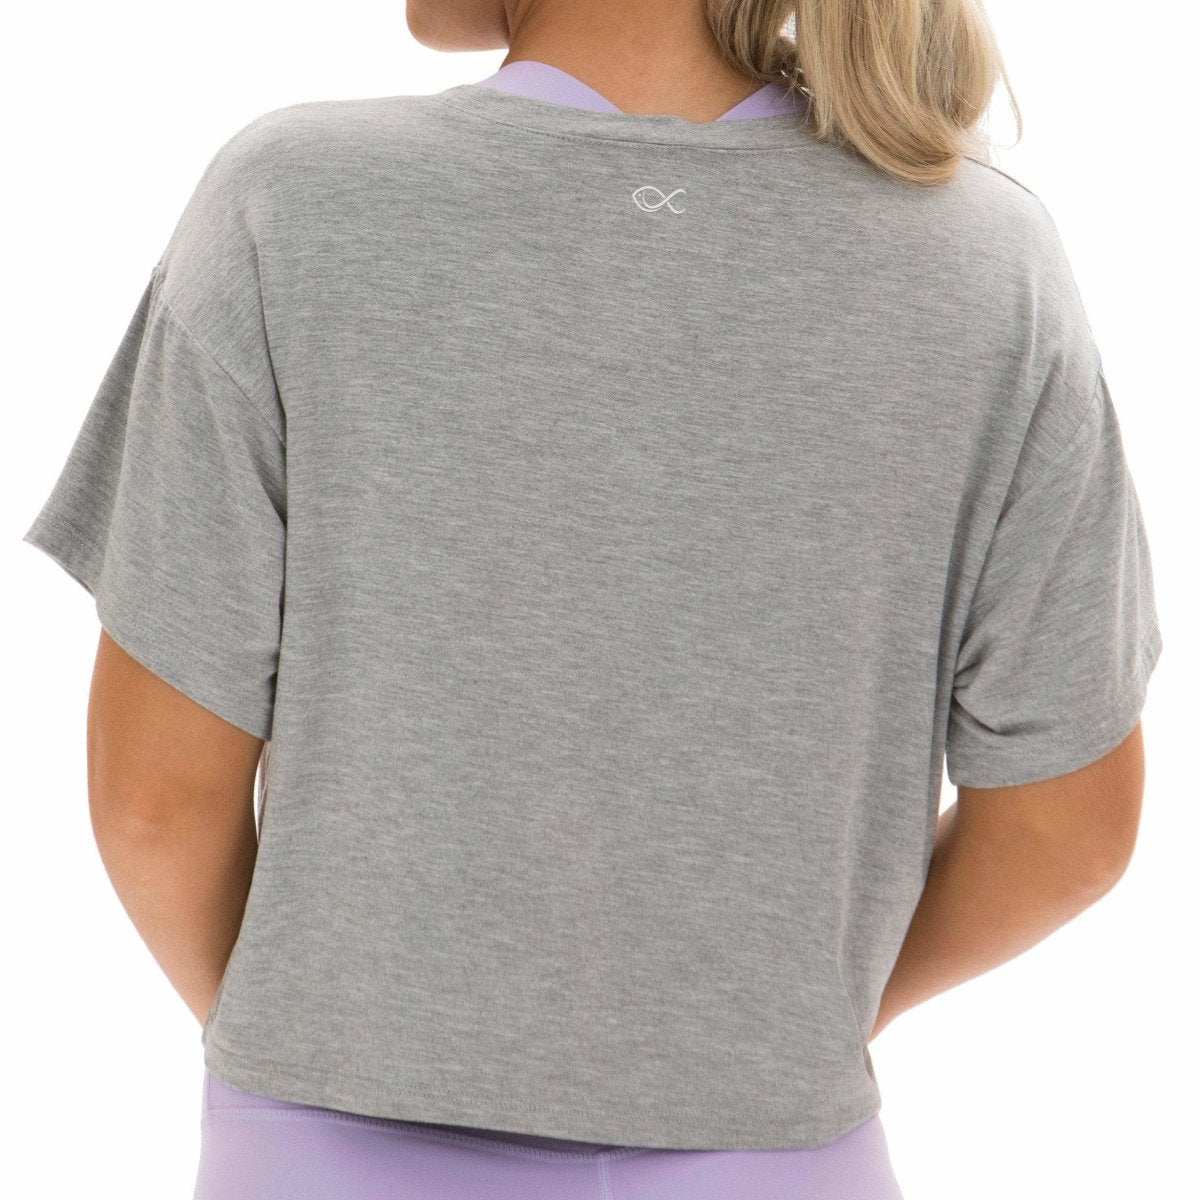 Loose-fit Crop Top in Grey - Southern Athletica